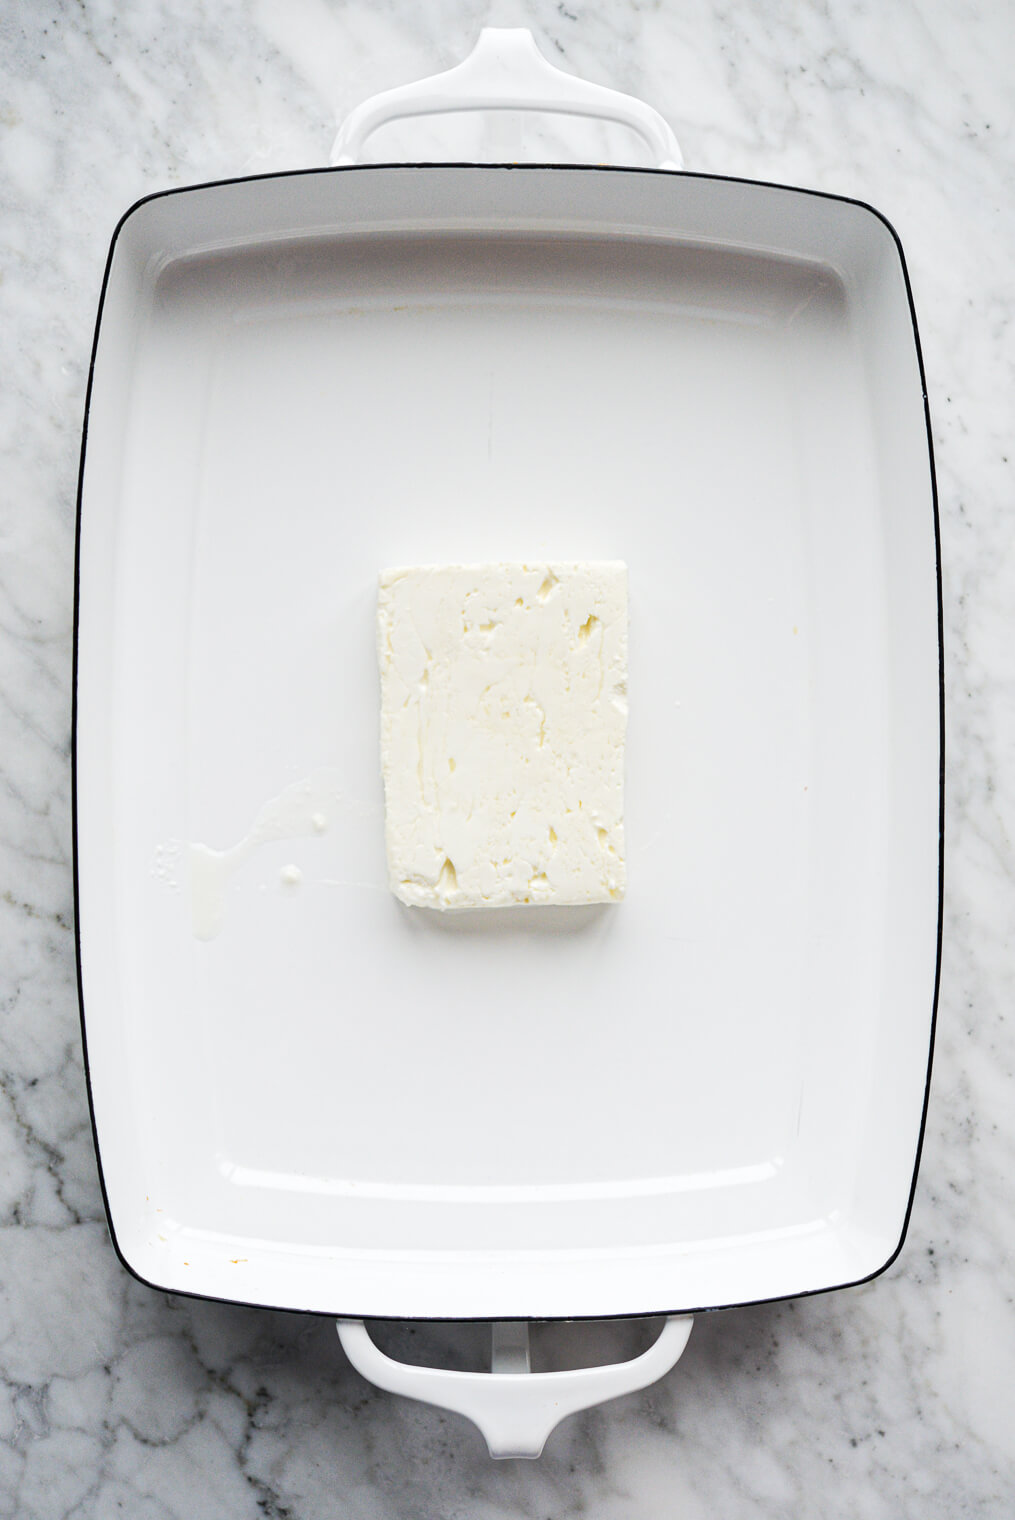 a block of feta cheese sitting in a white baking dish on a marble surface